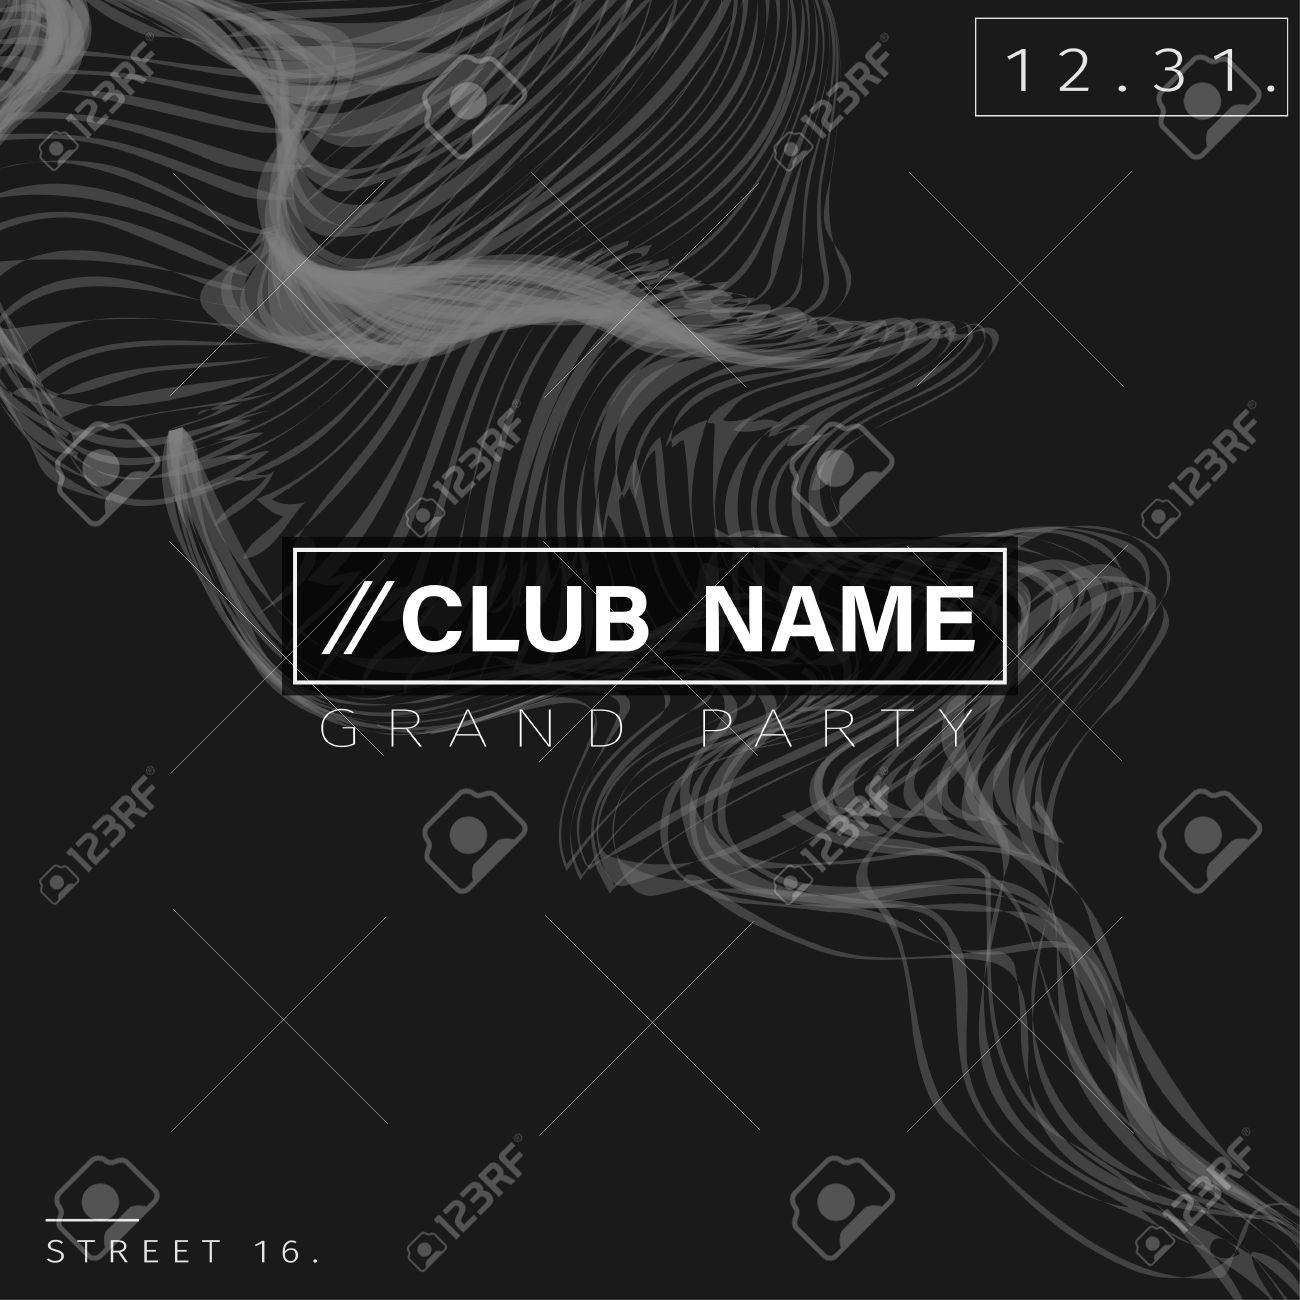 Club Party Poster Background Template Vector EPS10 - 50956037